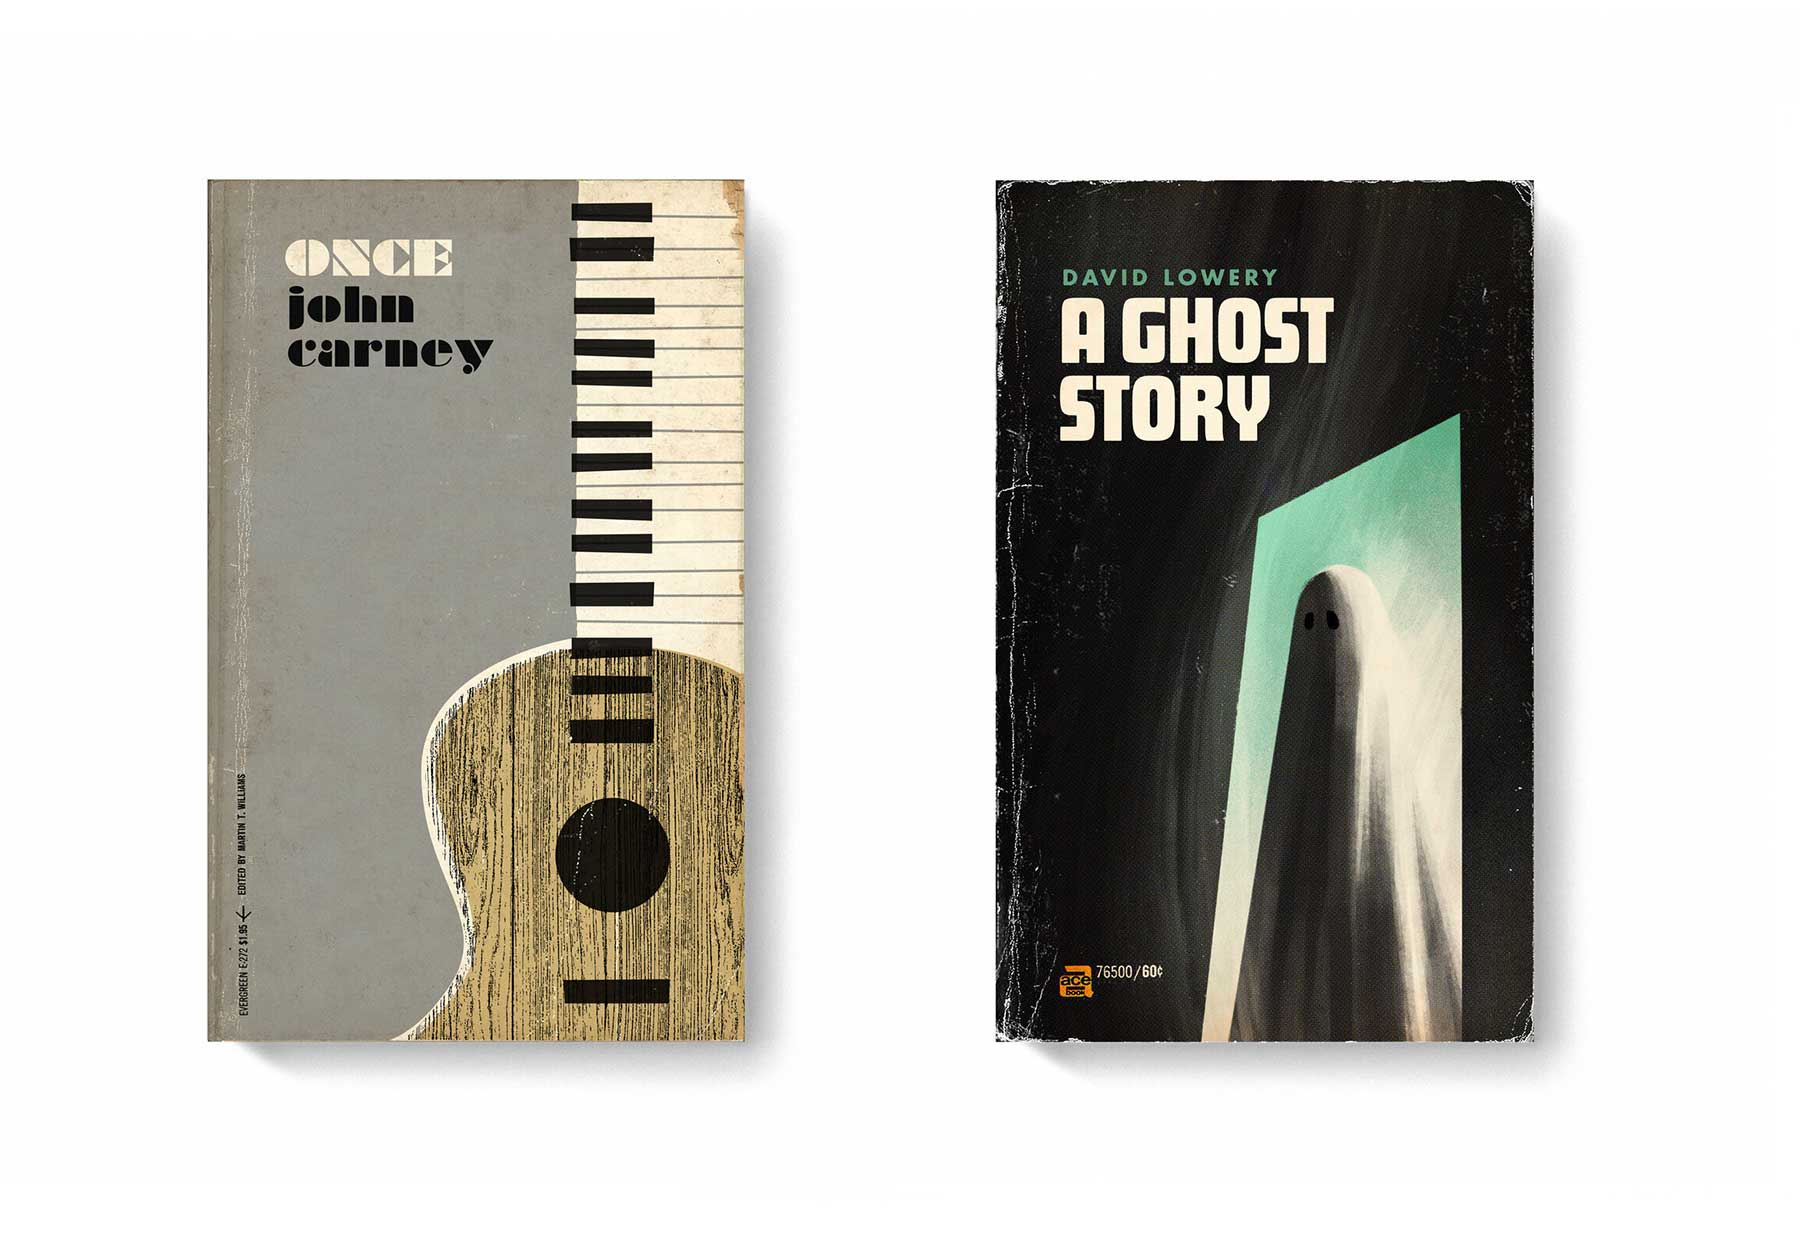 Film-Klassiker als Bücher-Design good-movies-as-old-books-Matt-Stevens_09